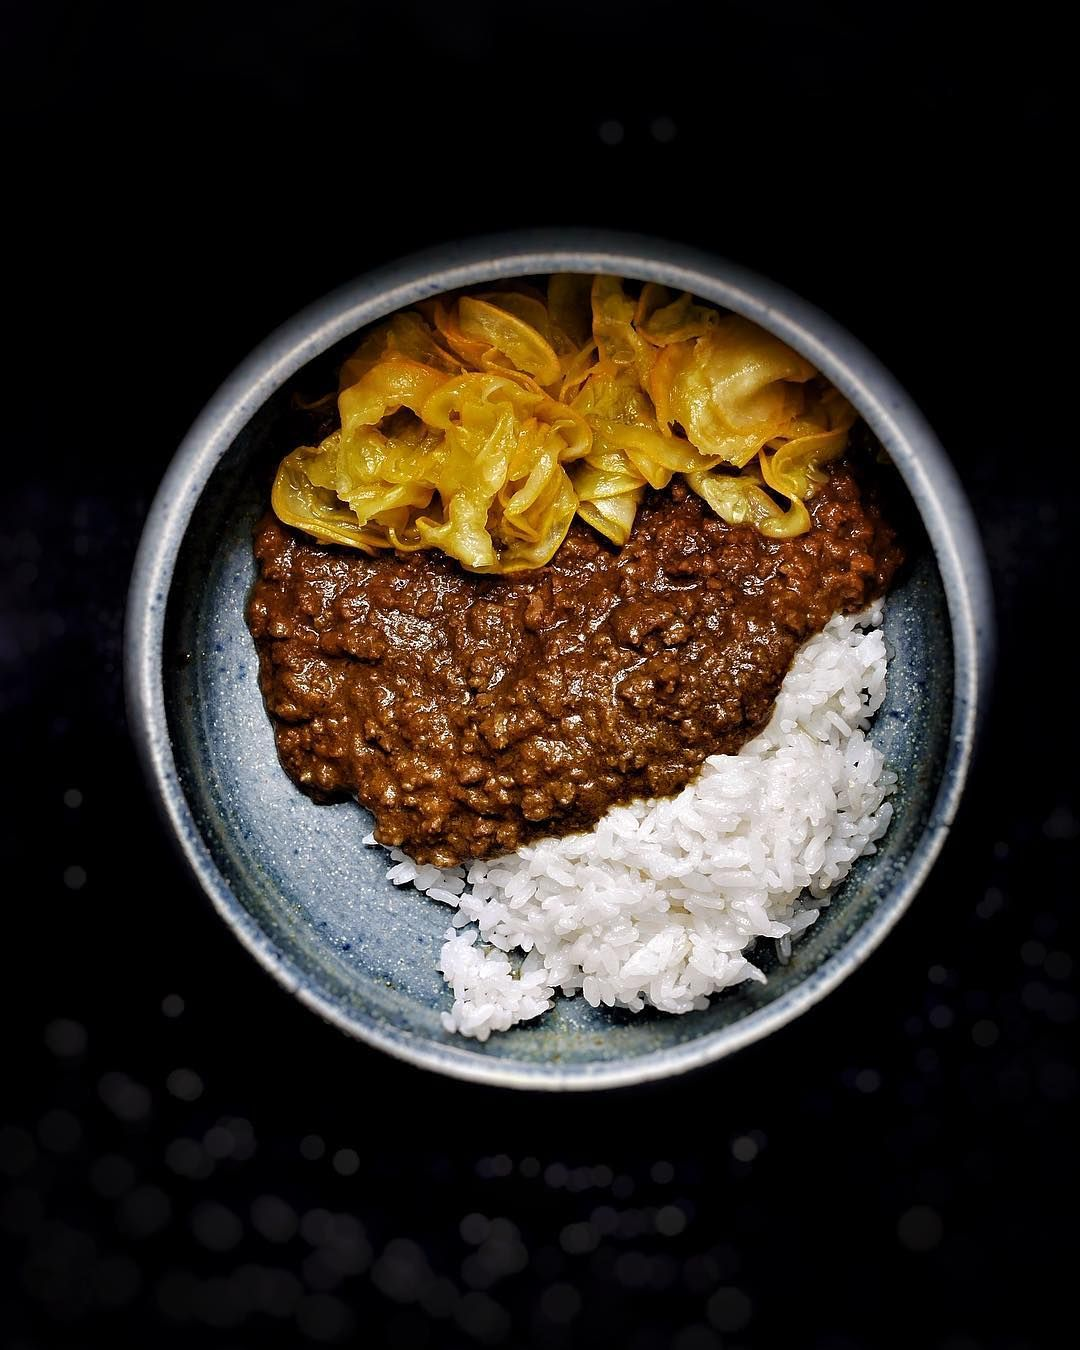 Japanese Minced Beef Curry Recipe Just Posted On The Chubbyhubbyblog Chubbyhubby Dot Net Japanese Curry Rice Is Beef Curry Minced Beef Curry Mince Beef